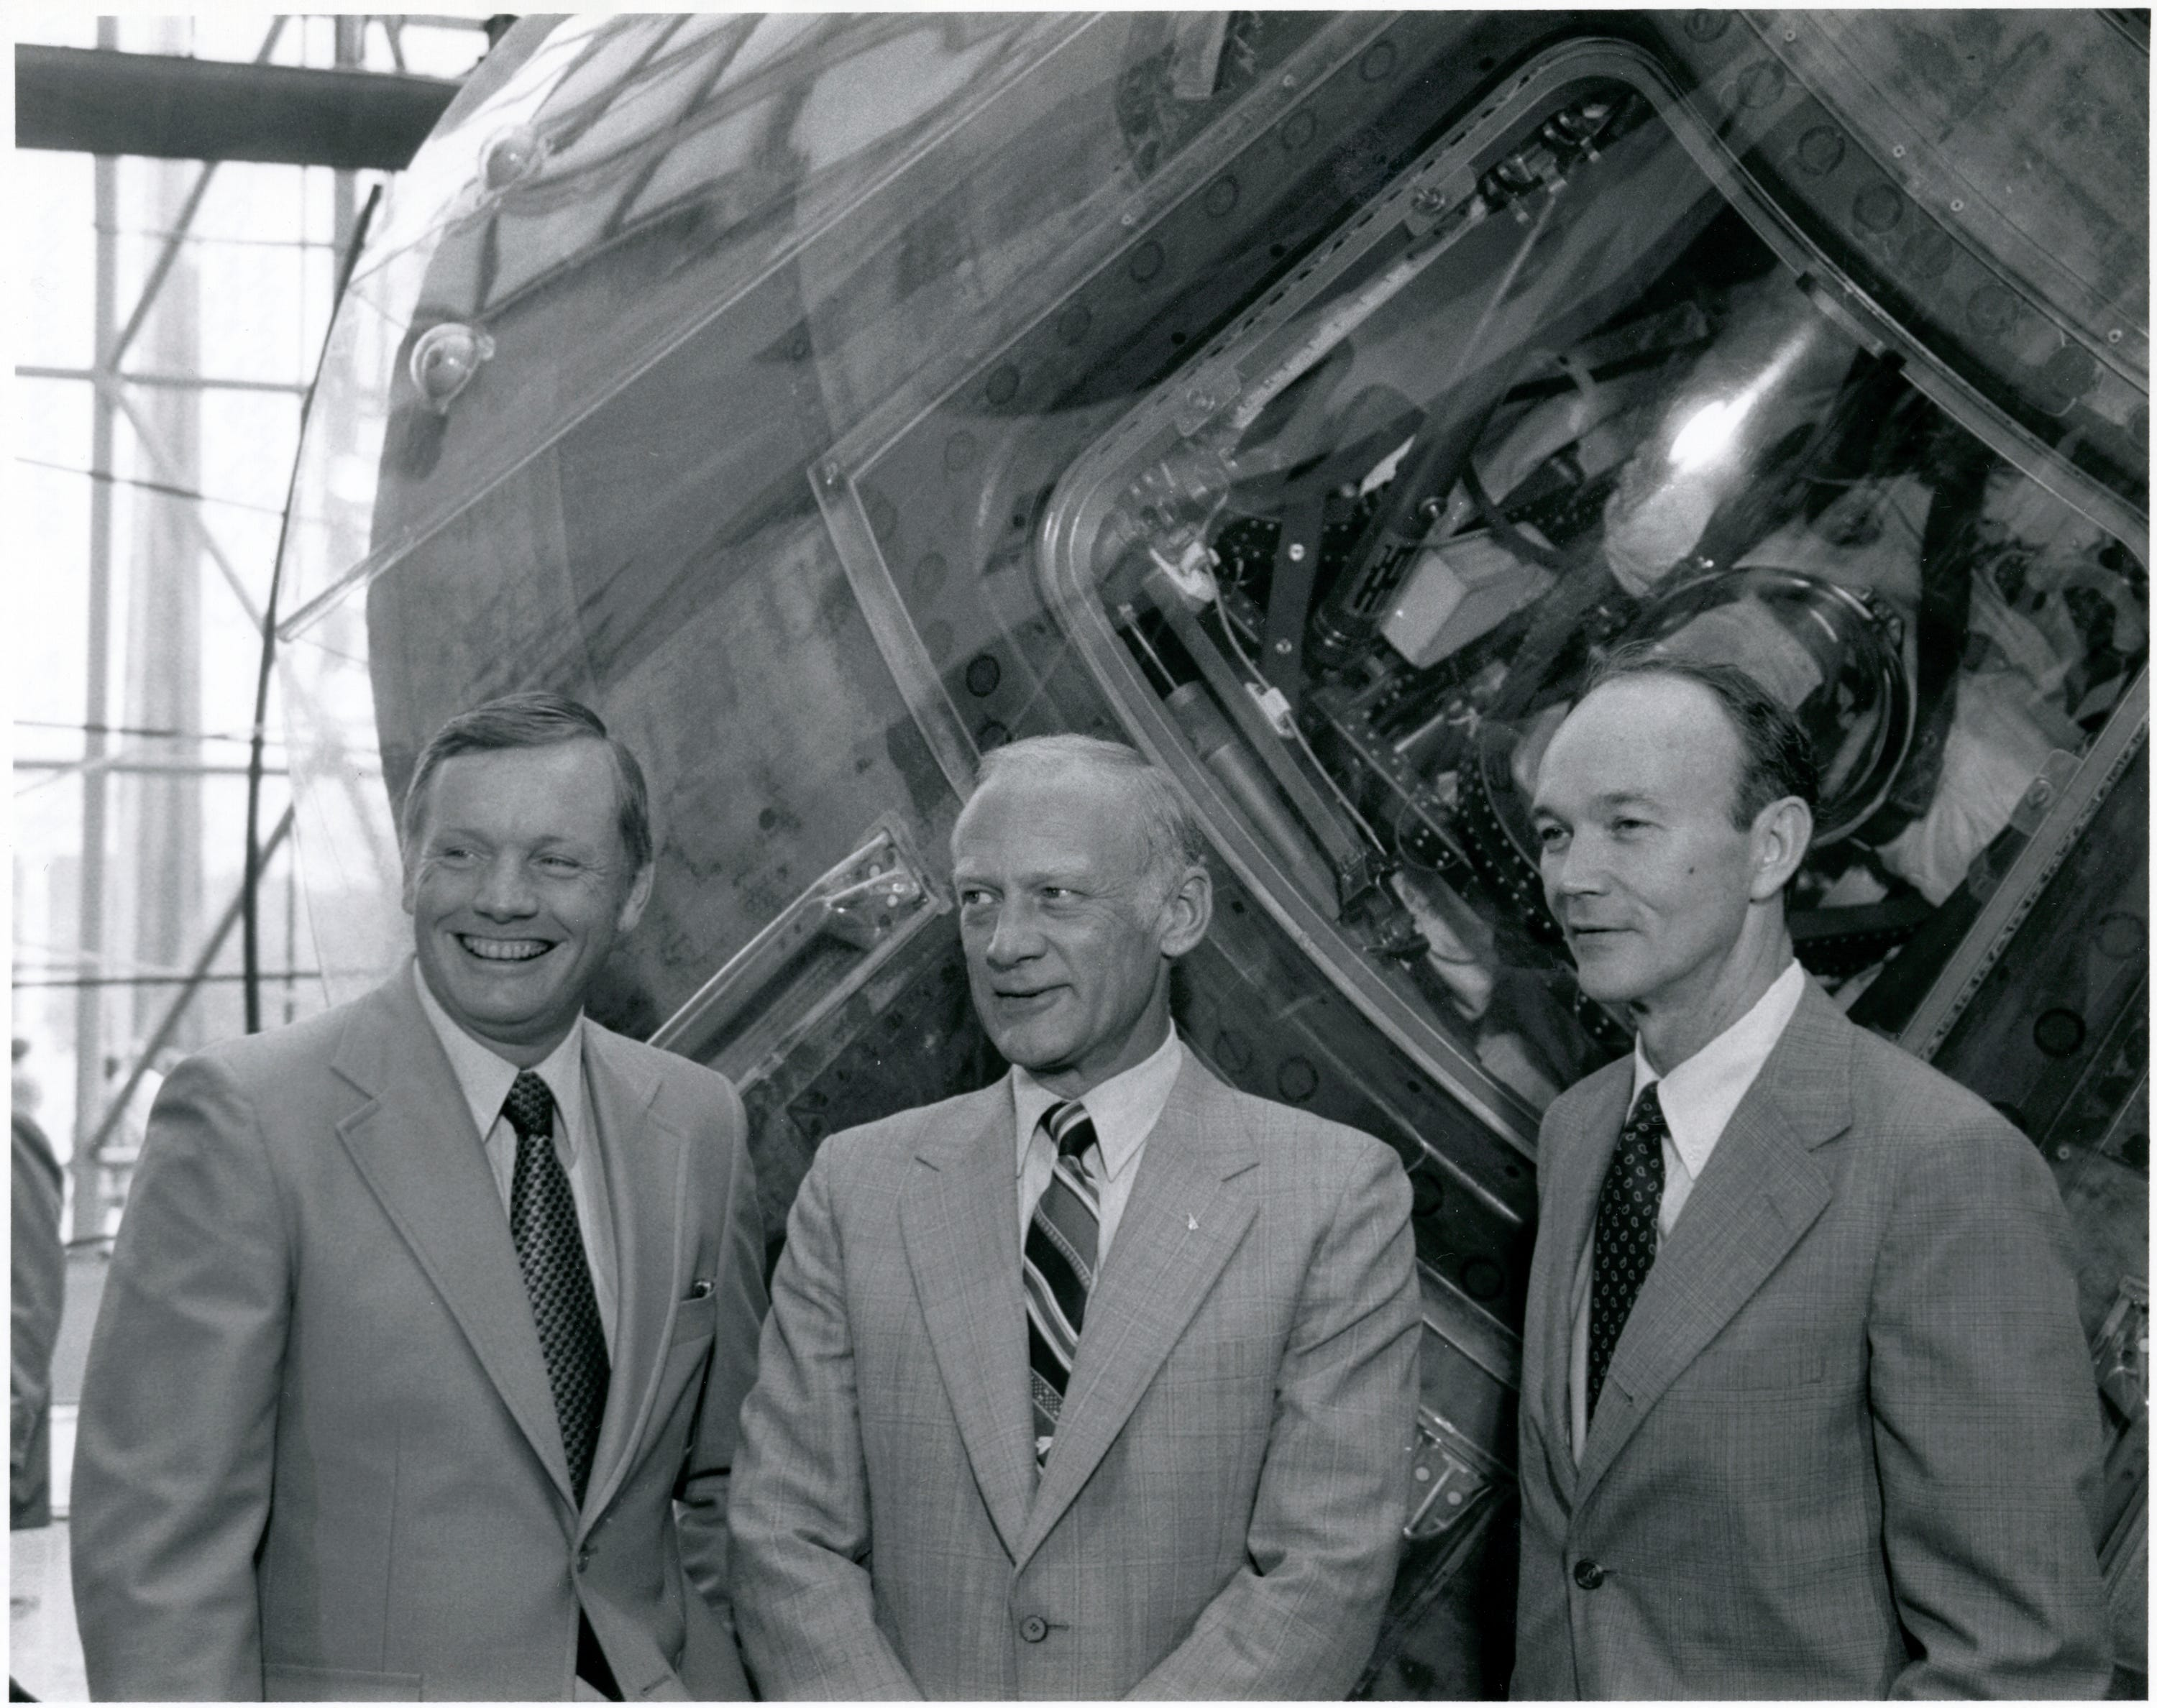 Apollo 11 astronauts Neil Armstrong, Buzz Aldrin and Michael Collins pose in front of the Columbia at the National Air and Space Museum in 1979.